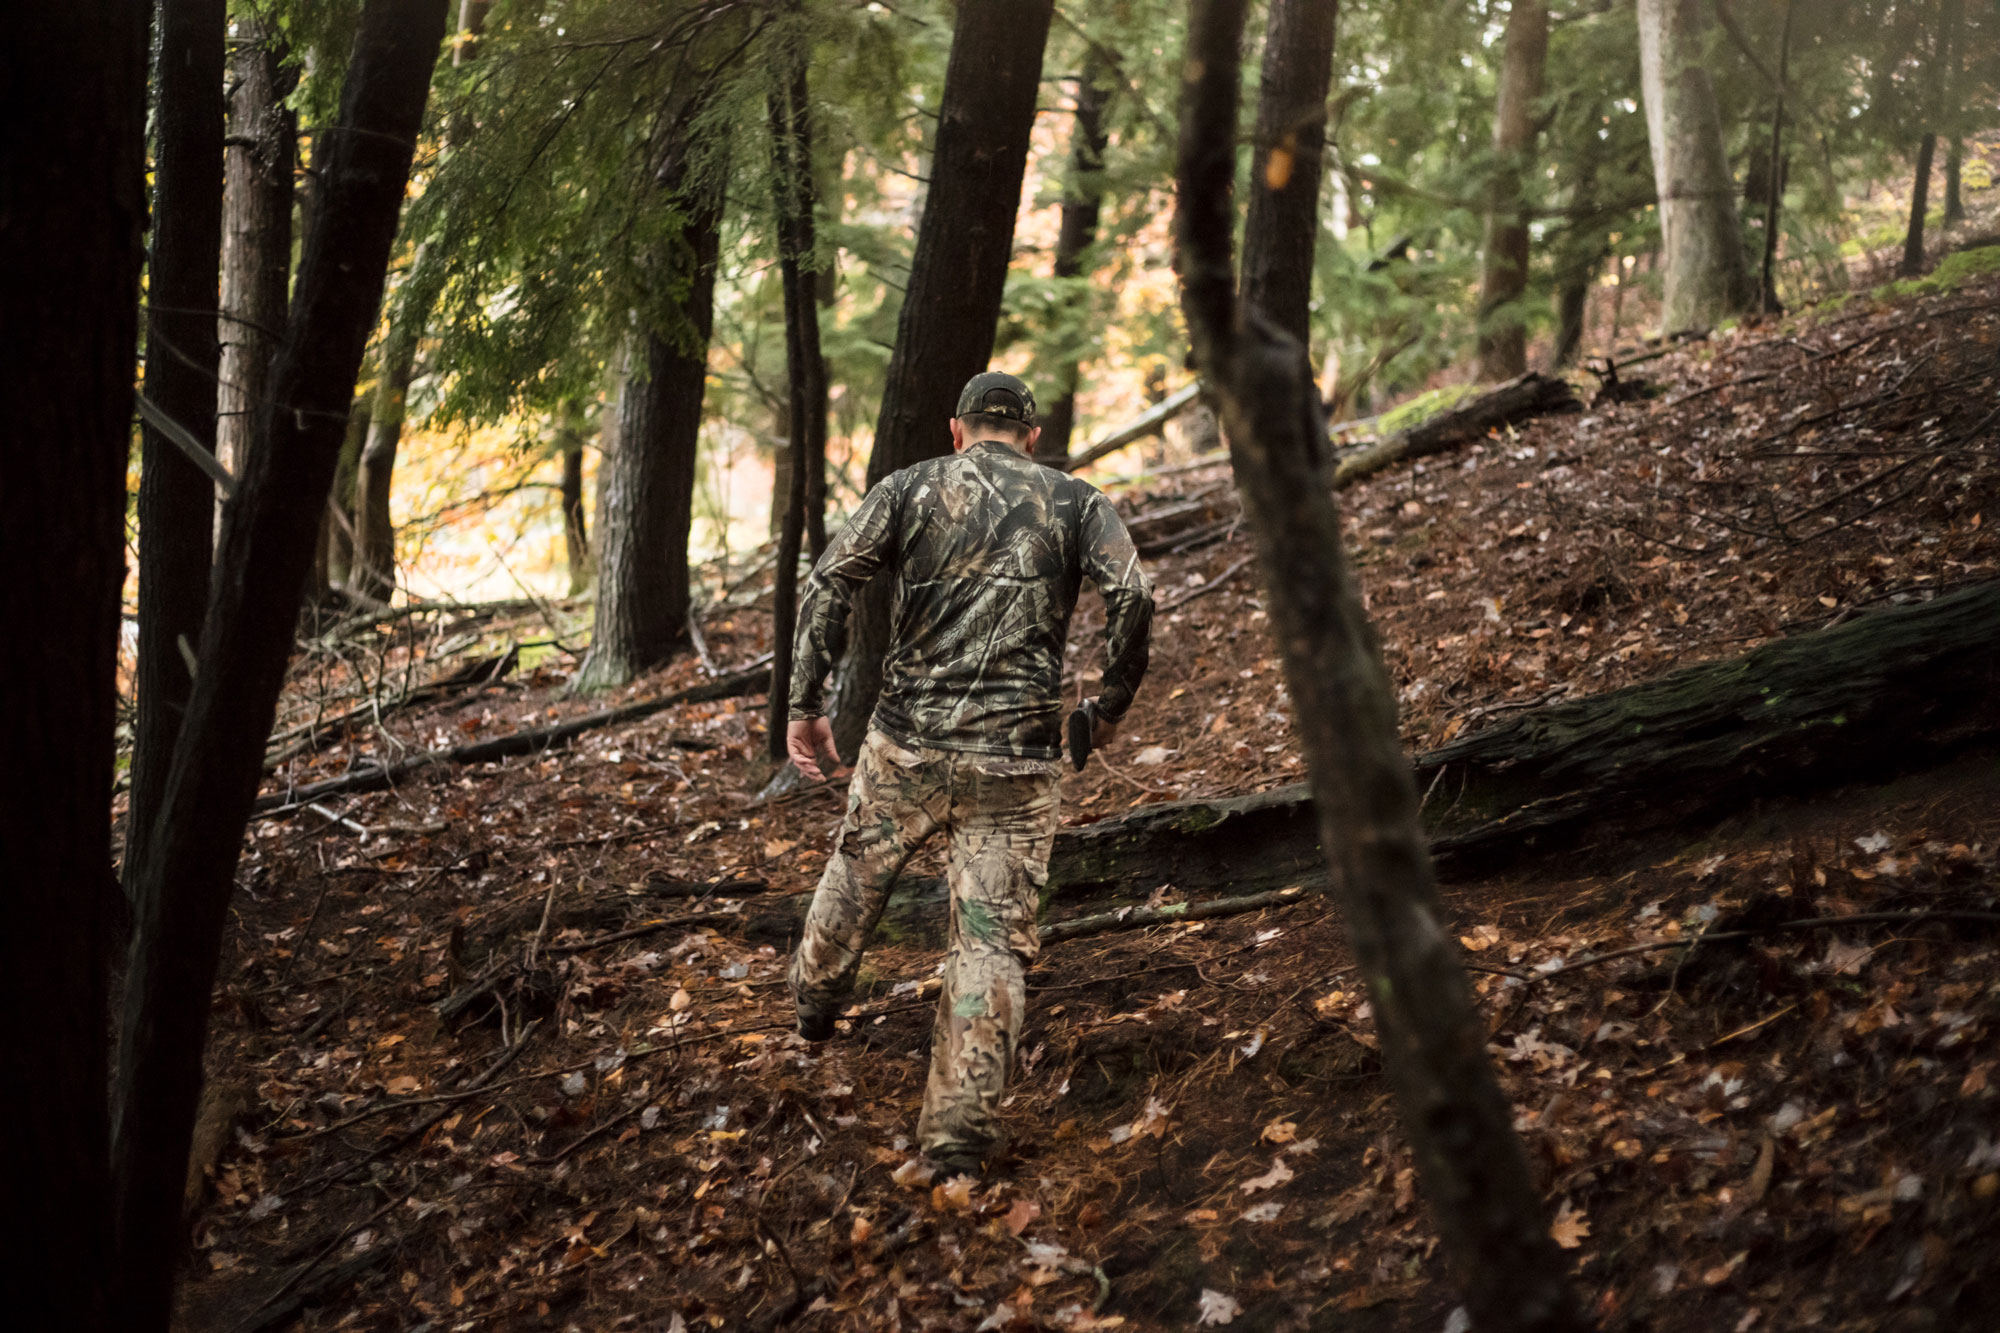 hunter in woods wearing camouflage photography